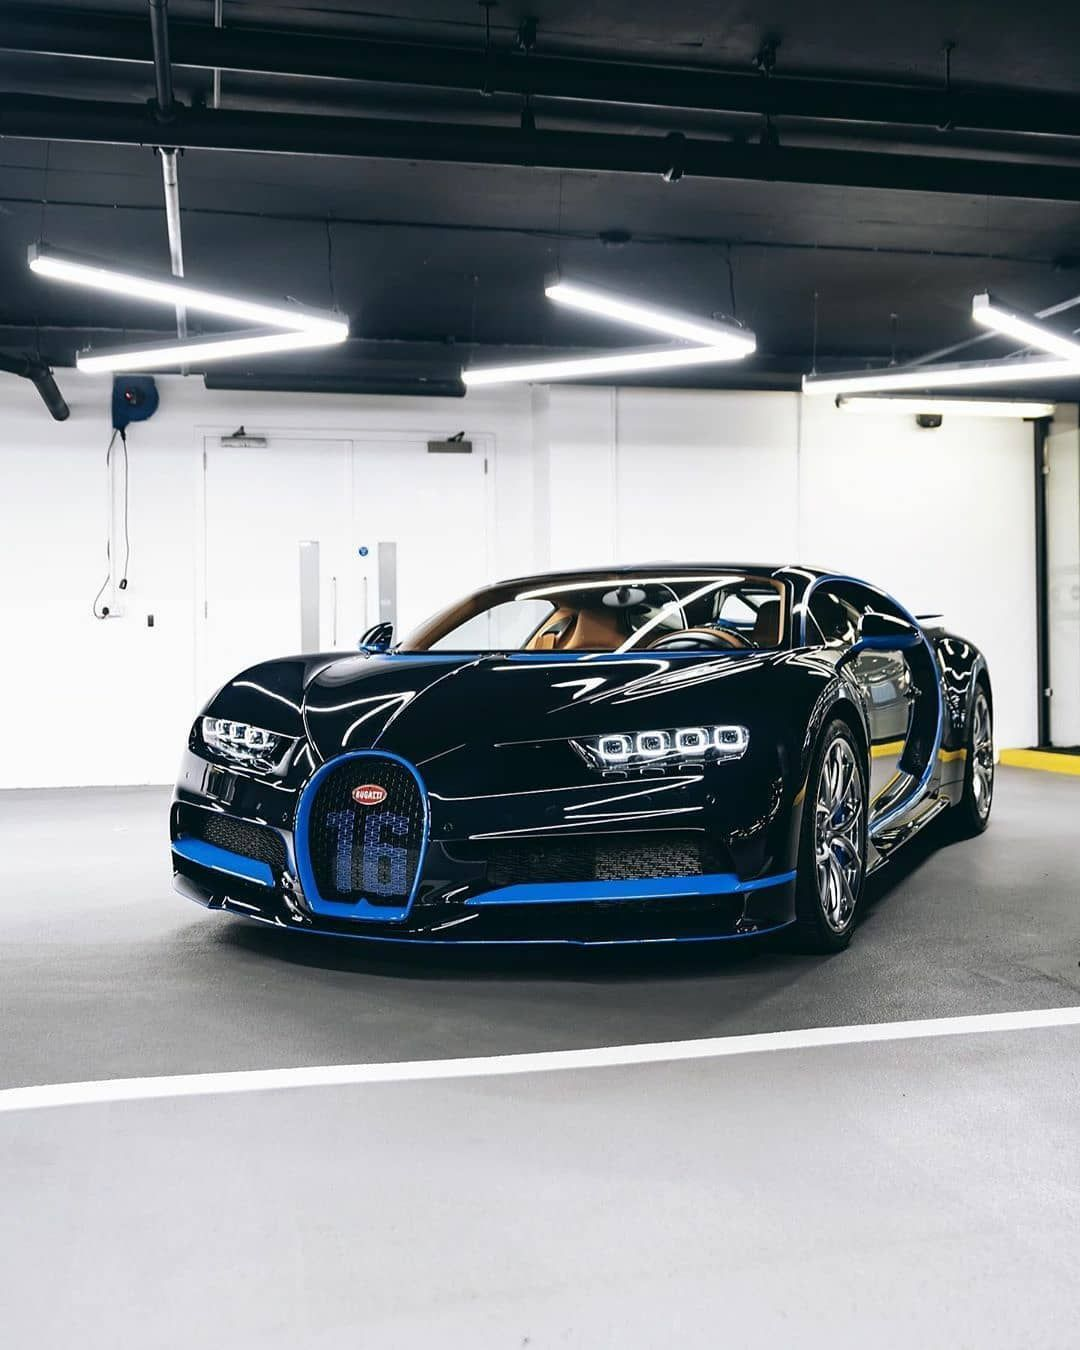 232 Likes 4 Comments B U G A T T I Bugatti Company On Instagram Epic Configuration On This Bugatti Chiron Blue Car In 2020 Bugatti Chiron Bugatti Cars Bugatti